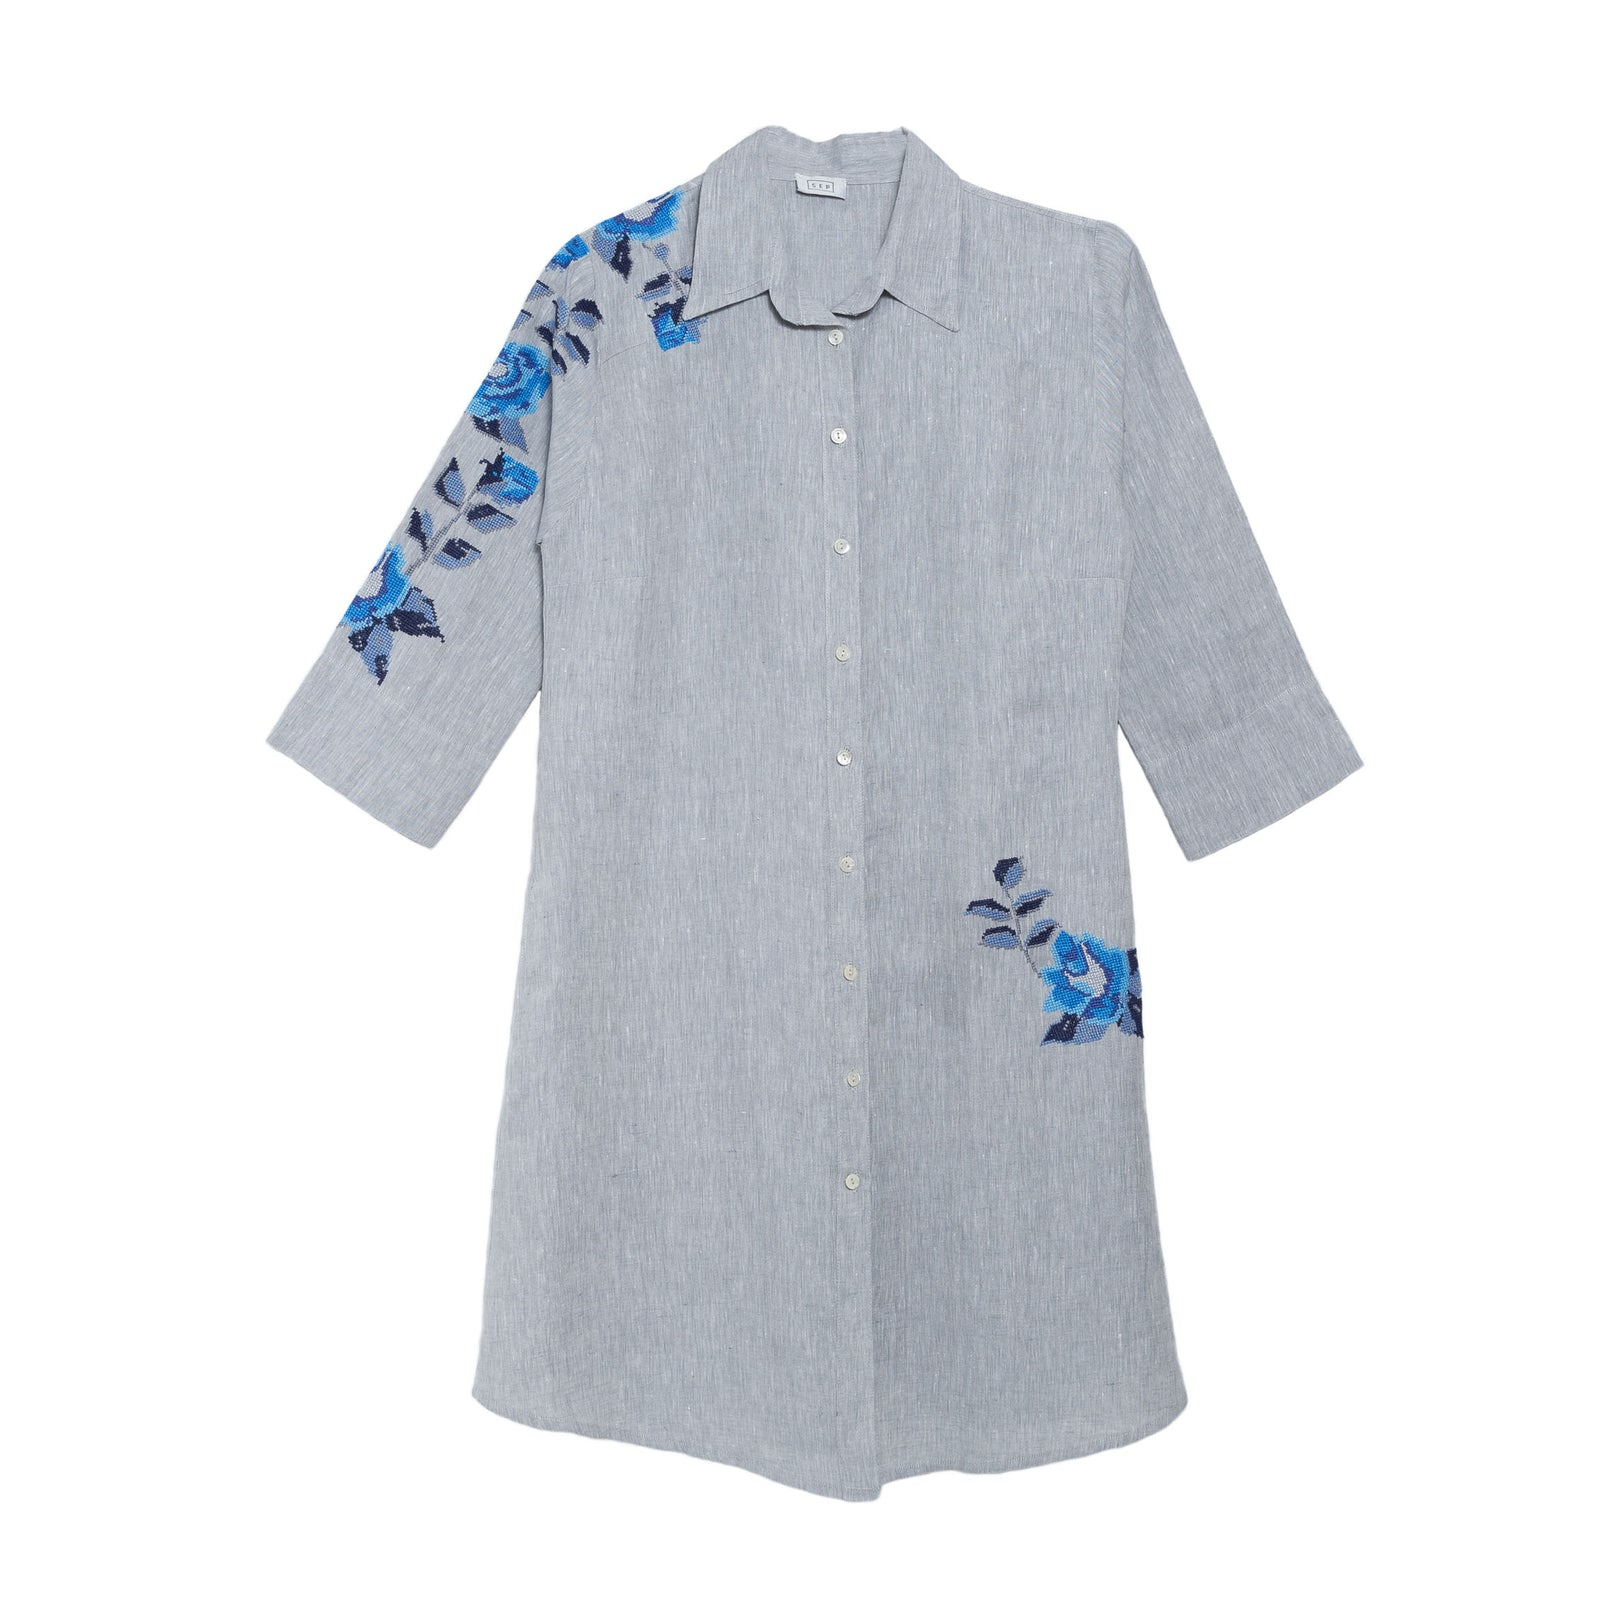 GRAY LINEN SHIRT DRESS SEA BLUE HANA ROSE